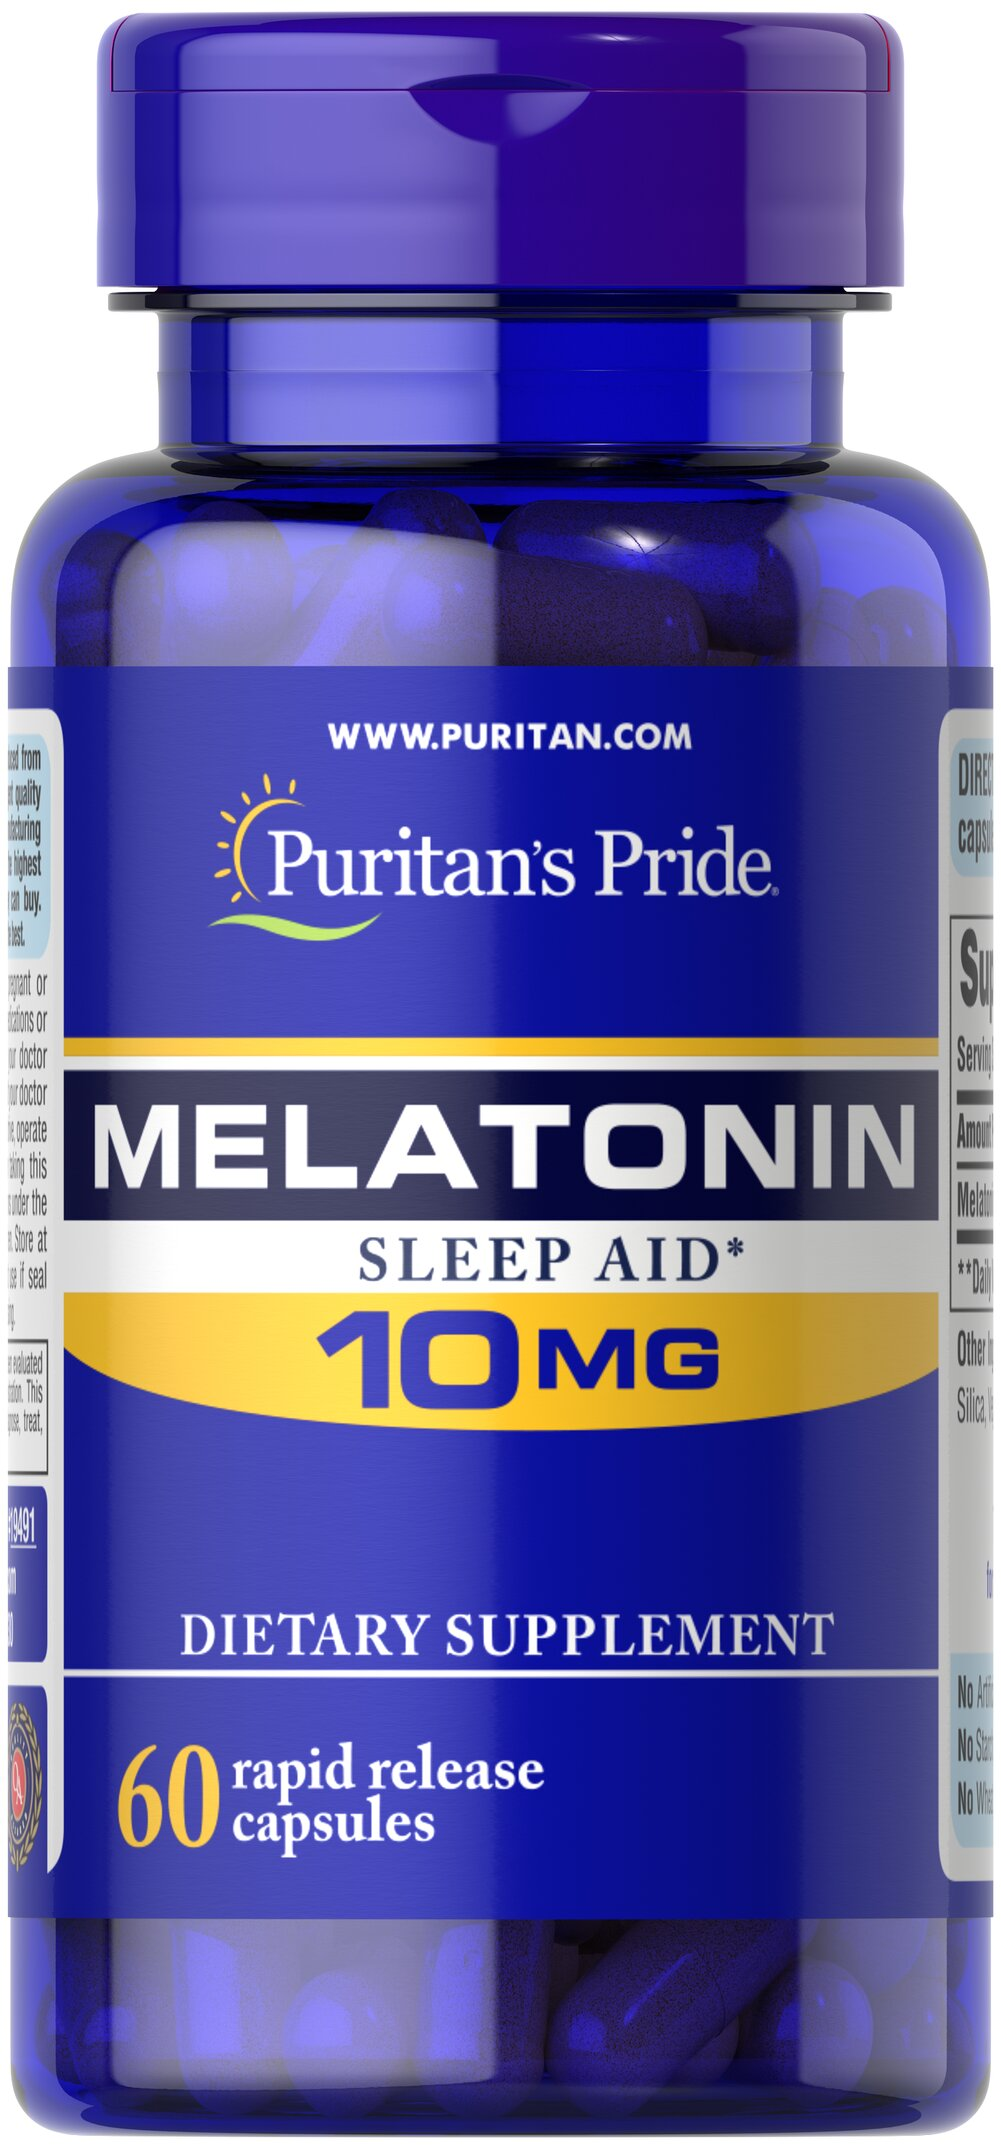 Melatonin 10 mg <p>Melatonin is a hormone that is naturally produced in the body. Melatonin is closely involved in the natural sleep cycle.** Because inefficient sleep can affect your energy and your mood, melatonin is a terrific choice if you experience occasional sleeplessness or jet lag, or if you want to improve your quality of rest.**  Melatonin helps you fall asleep faster and stay asleep longer.** When taken at bed time, melatonin may provide blood pressure support for bloo